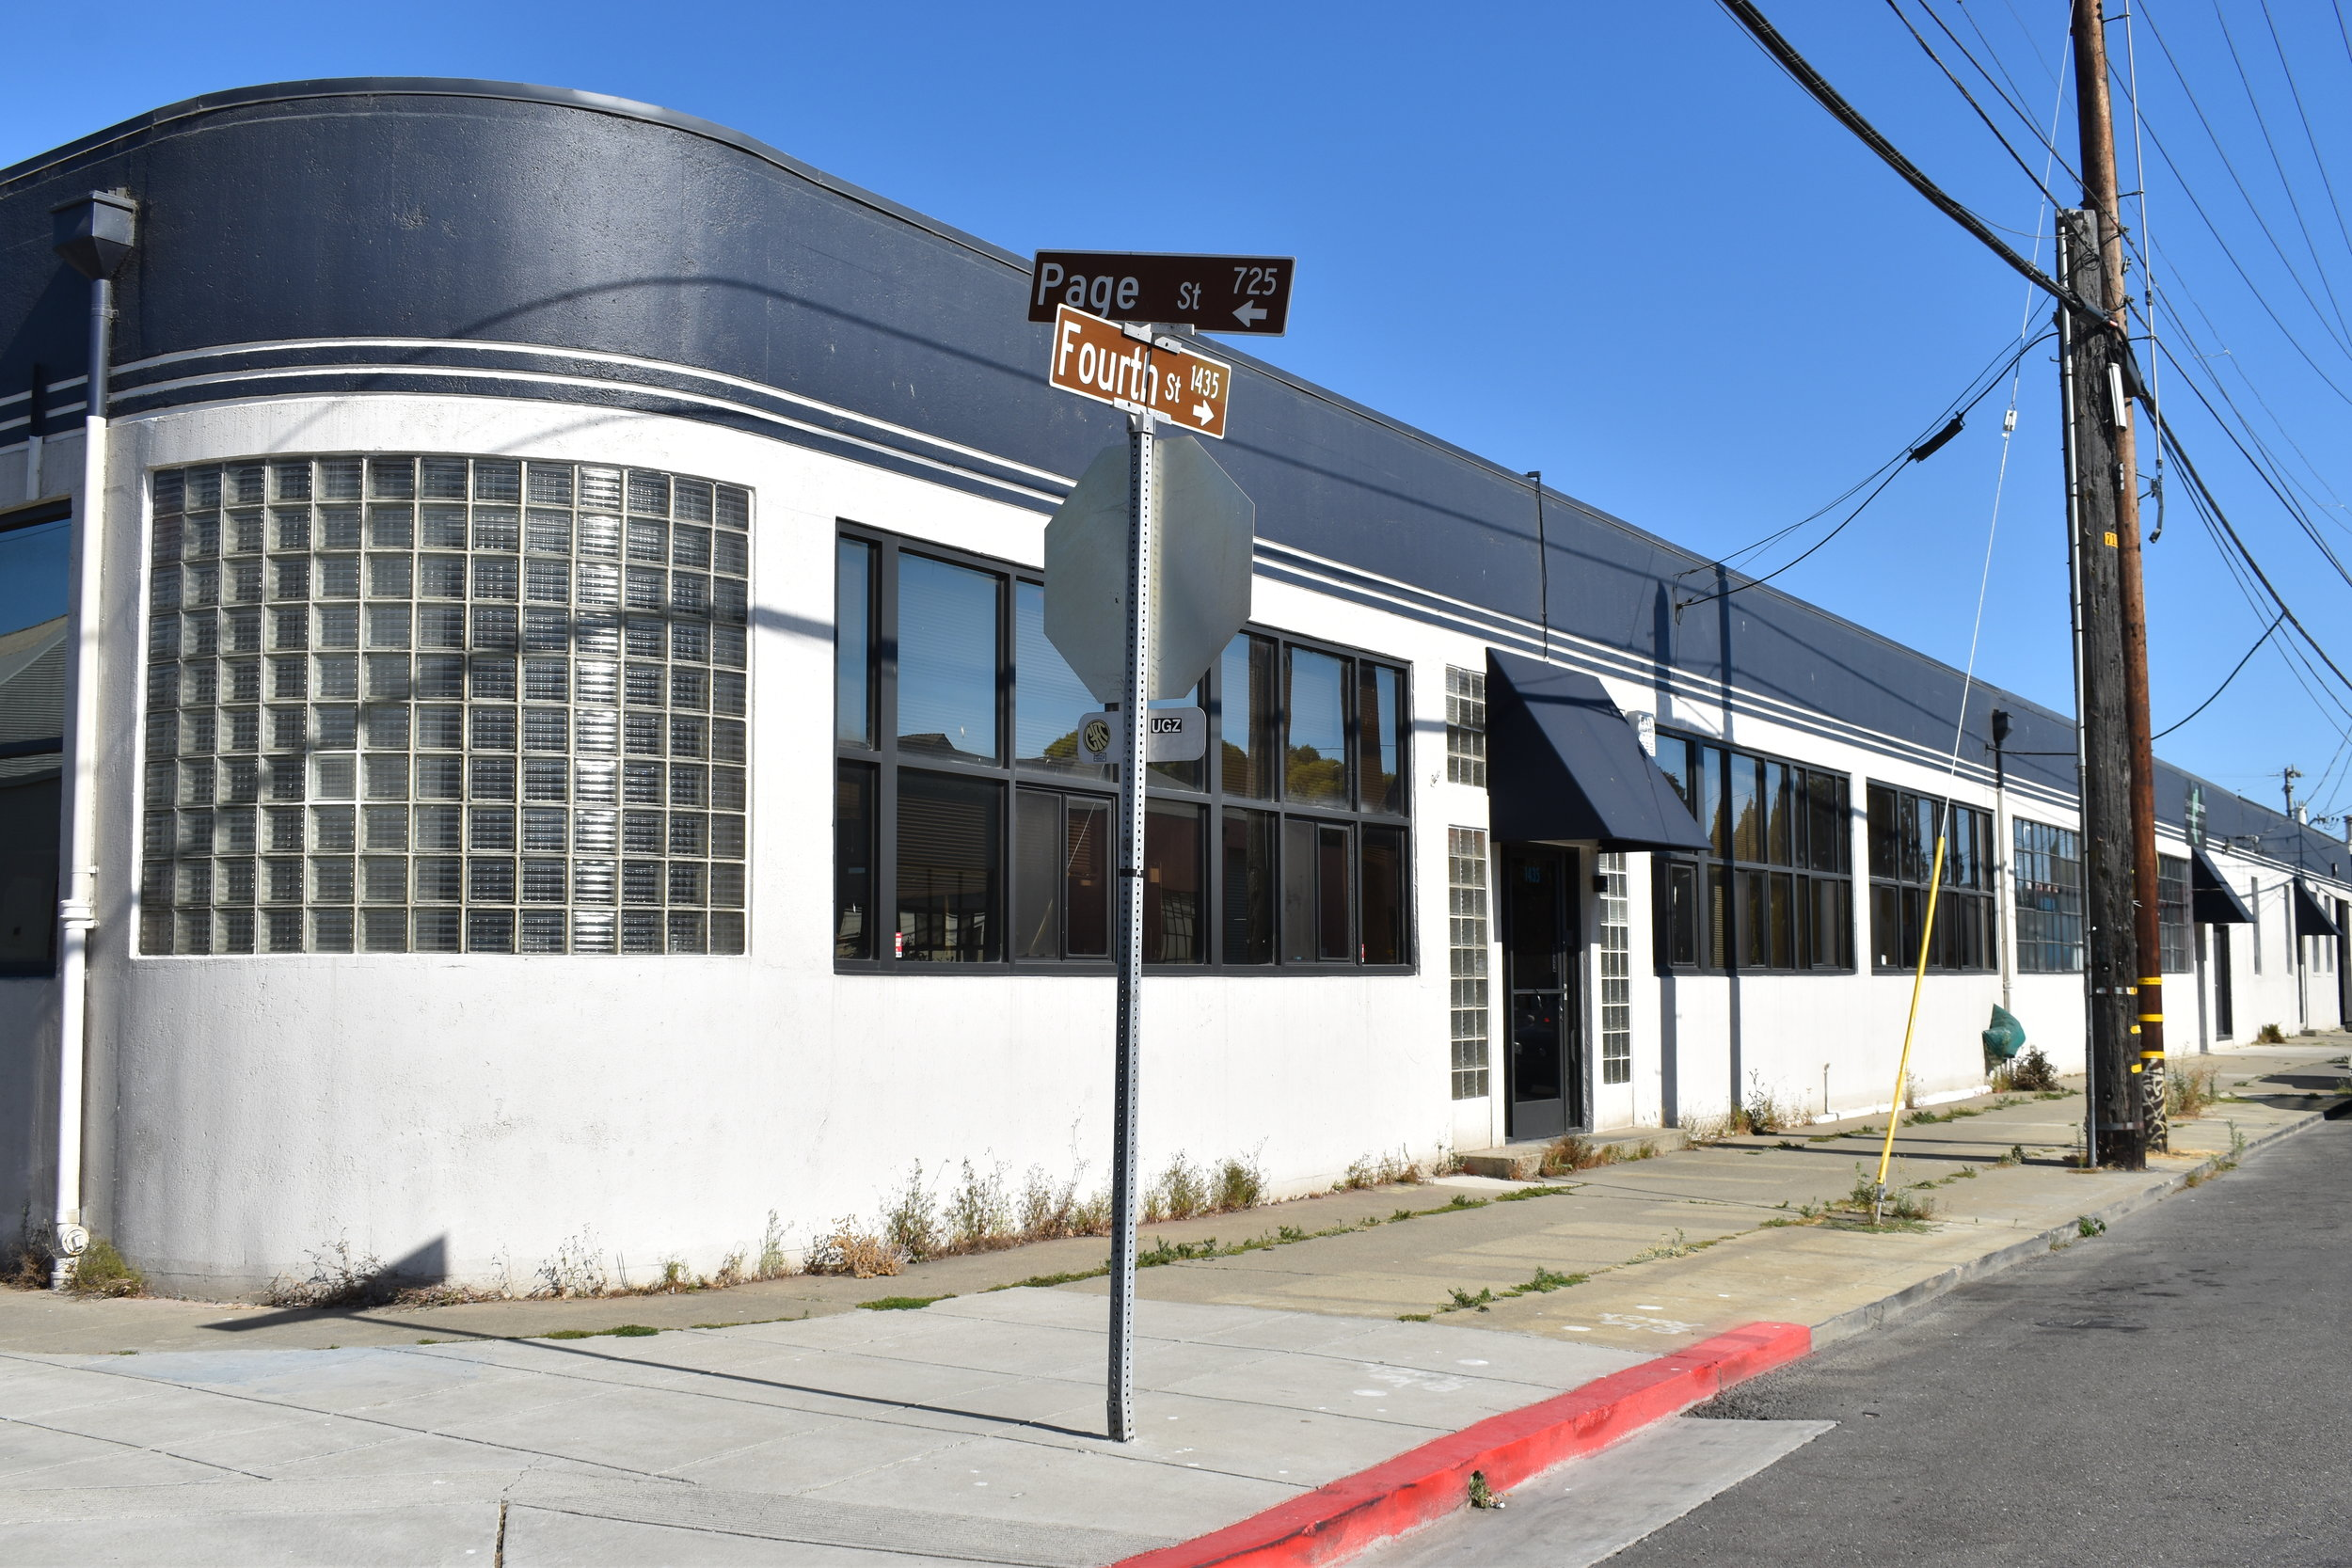 1435 4th st  Berkeley  Represented Buyer    insight realty  dre| 01829150